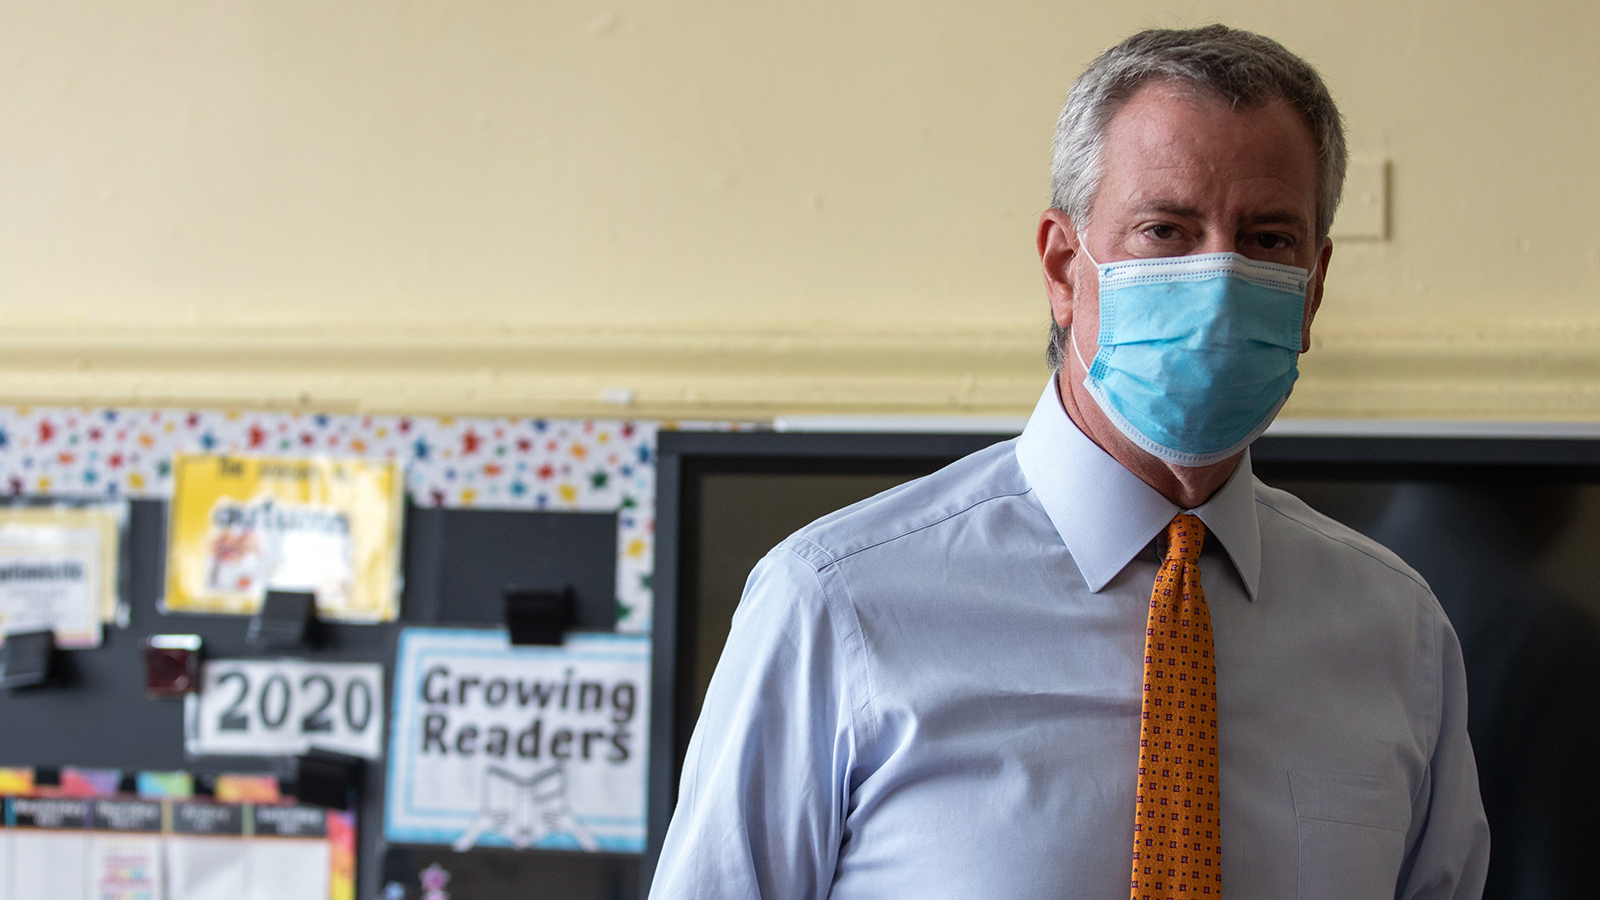 Bill de Blasio, mayor of New York, speaks during a news conference at New Bridges Elementary School in the Brooklyn borough of New York, U.S., on Wednesday, August 19.